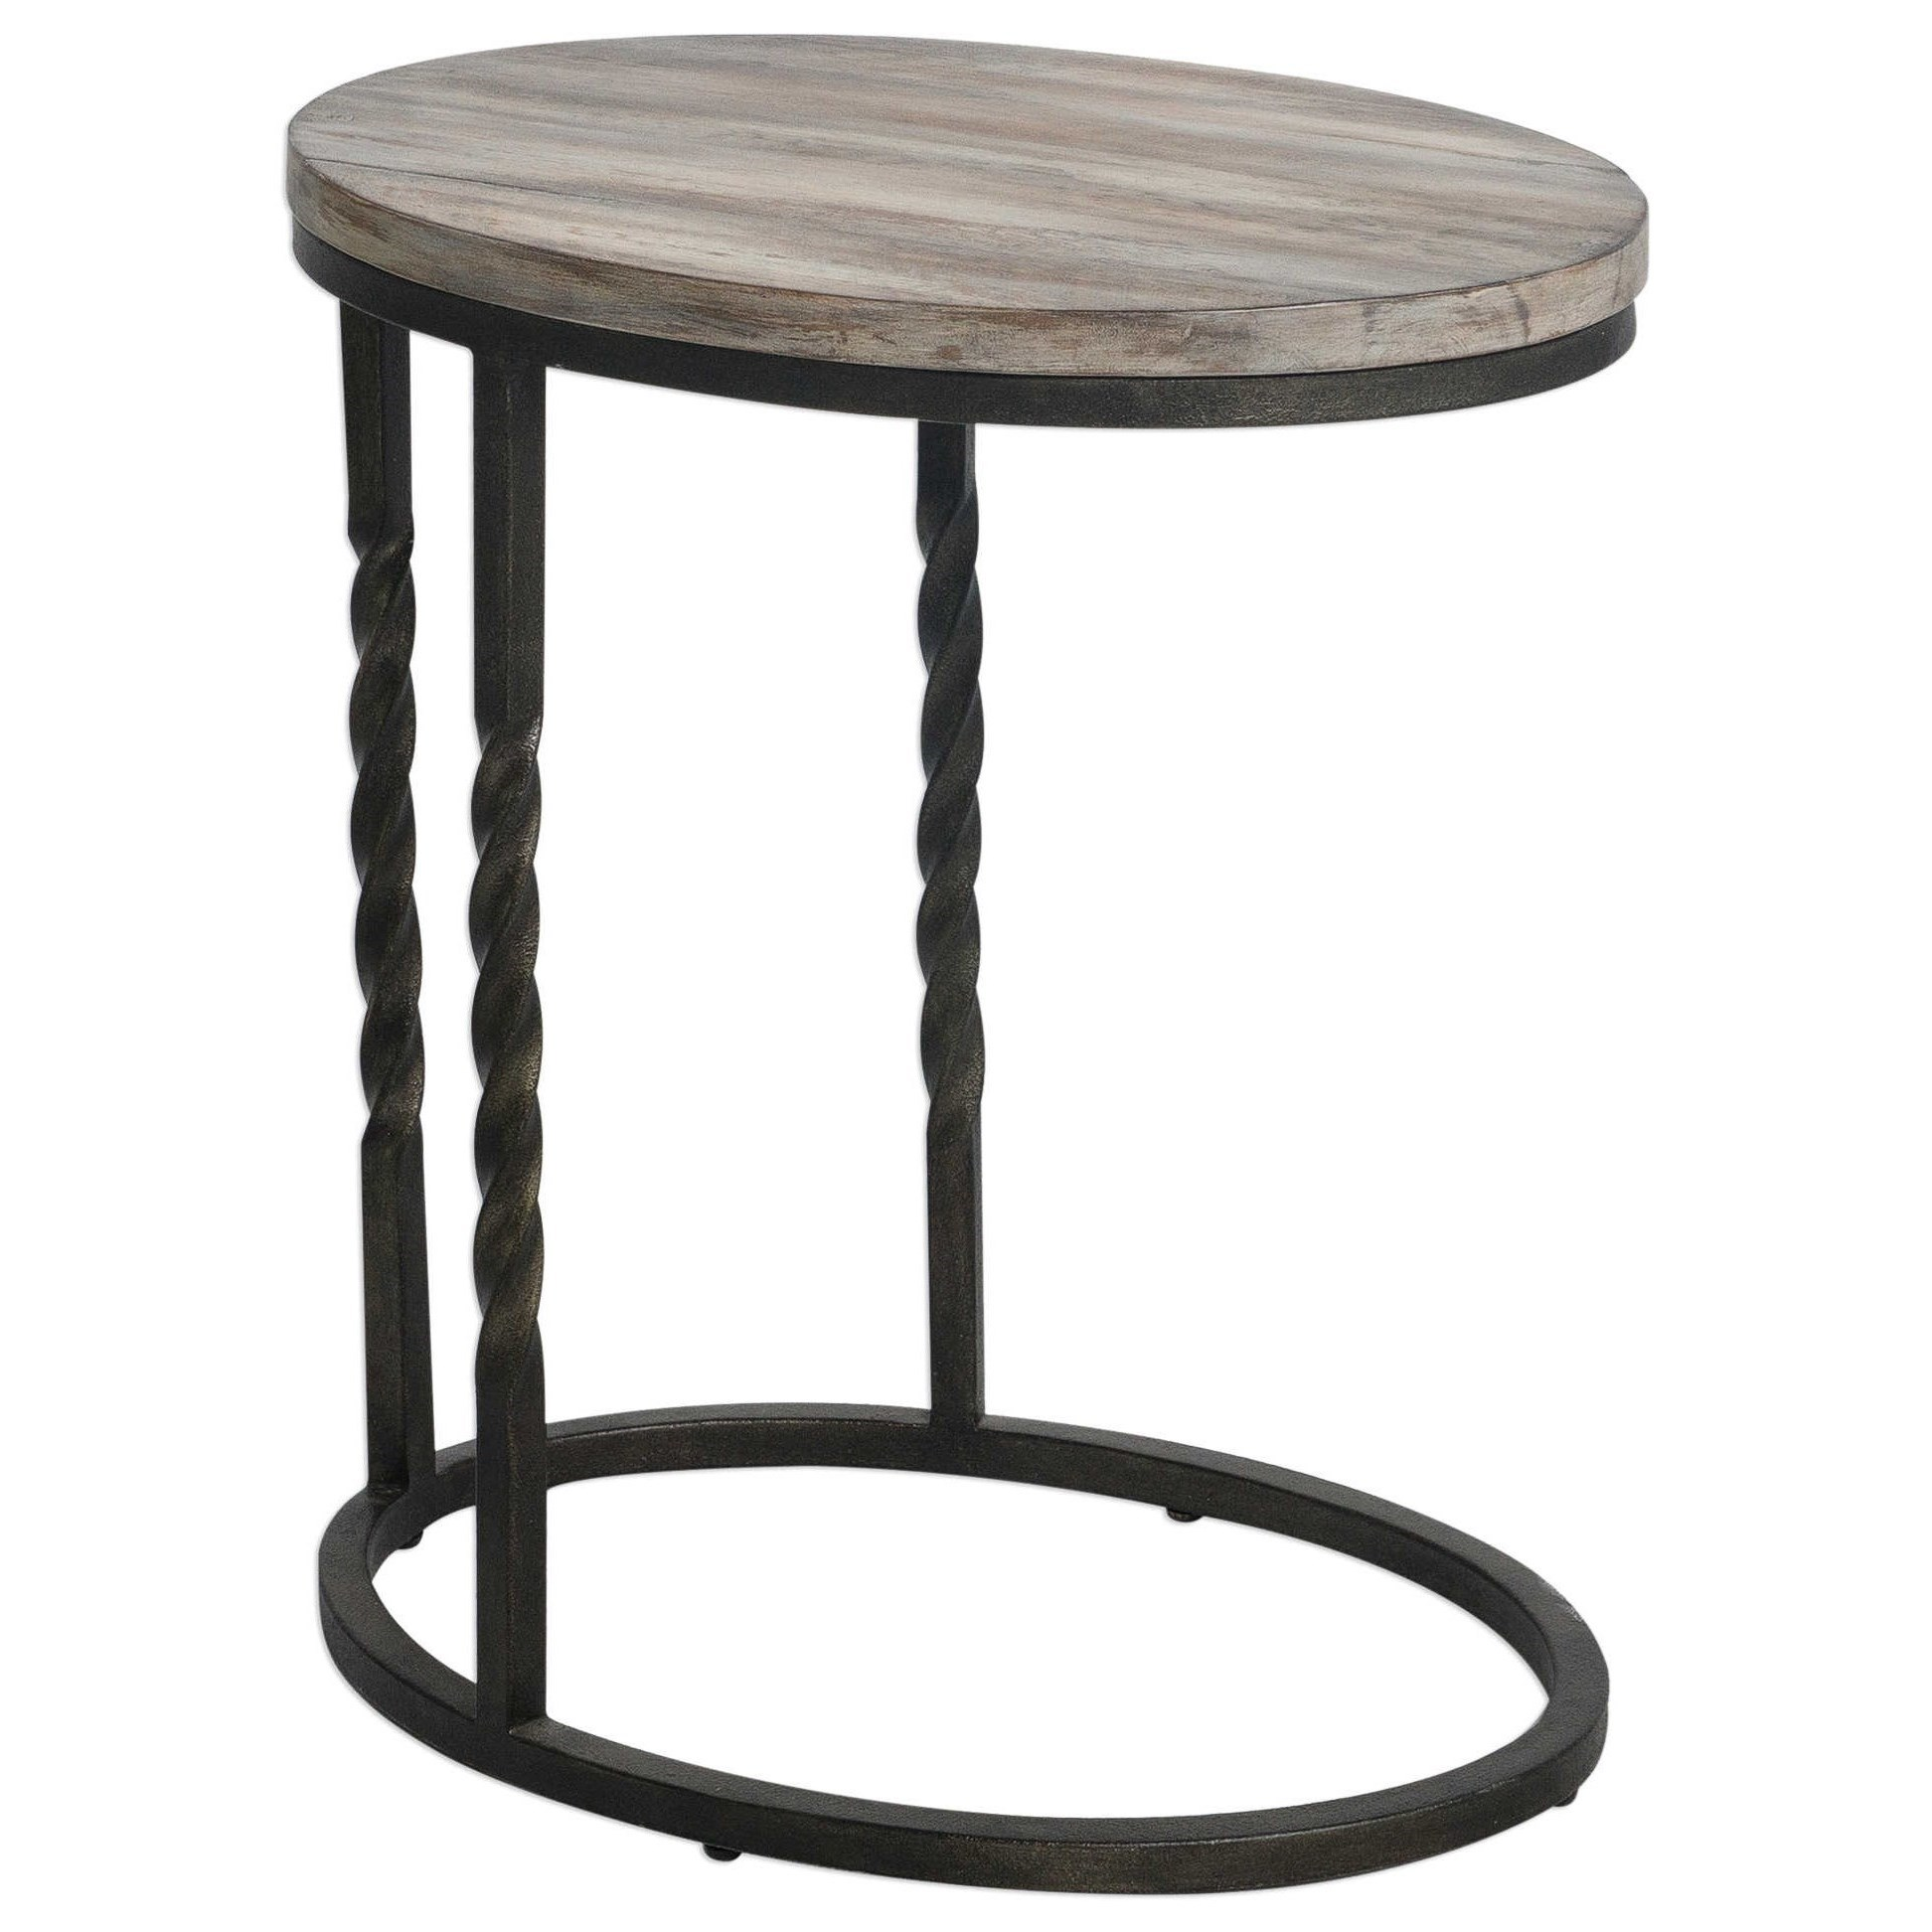 Accent Furniture - Occasional Tables Tauret Cantilever Side Table by Uttermost at O'Dunk & O'Bright Furniture